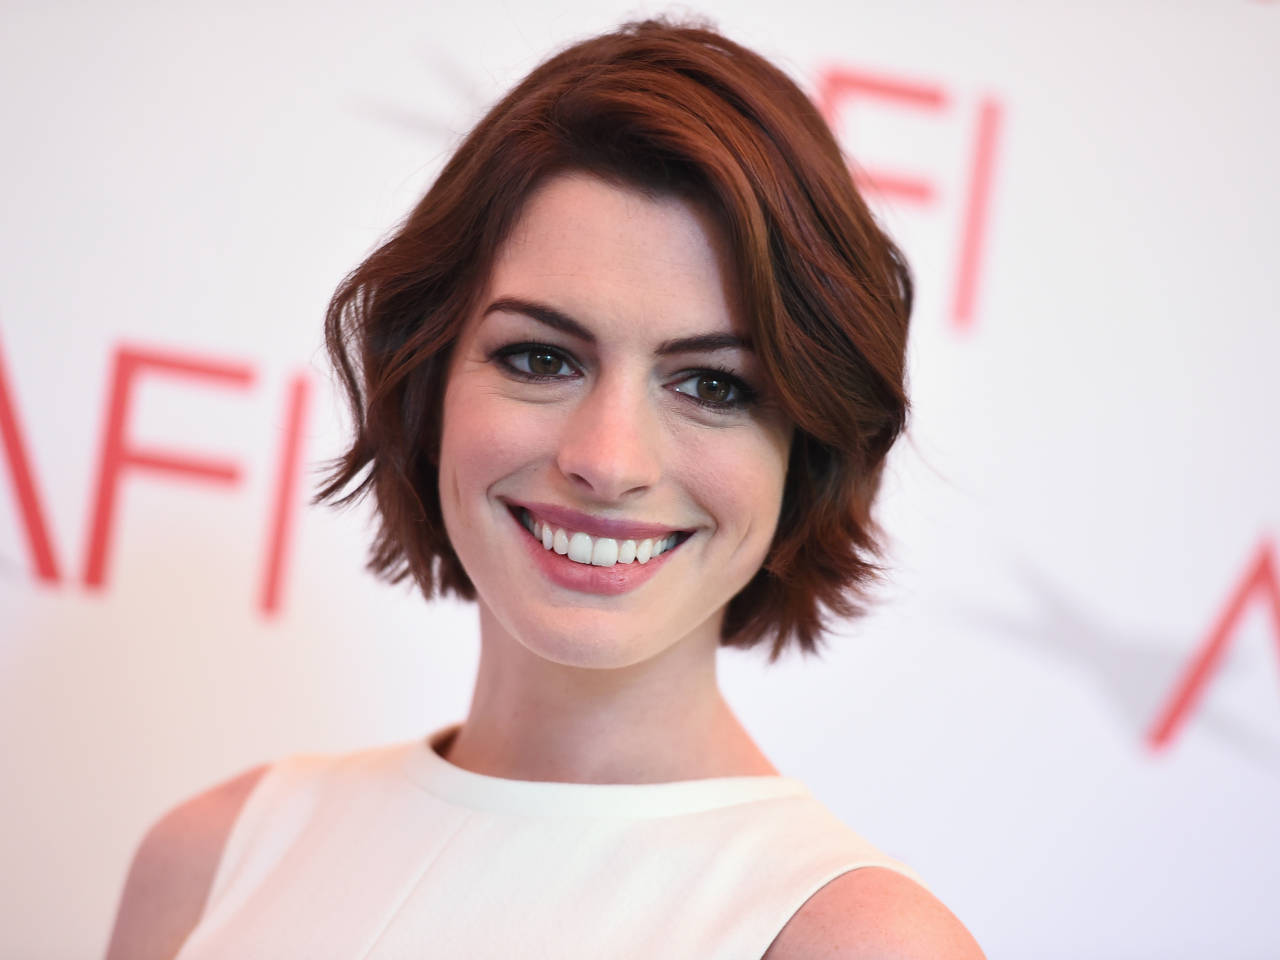 At 32, Anne Hathaway is already losing roles to younger actresses